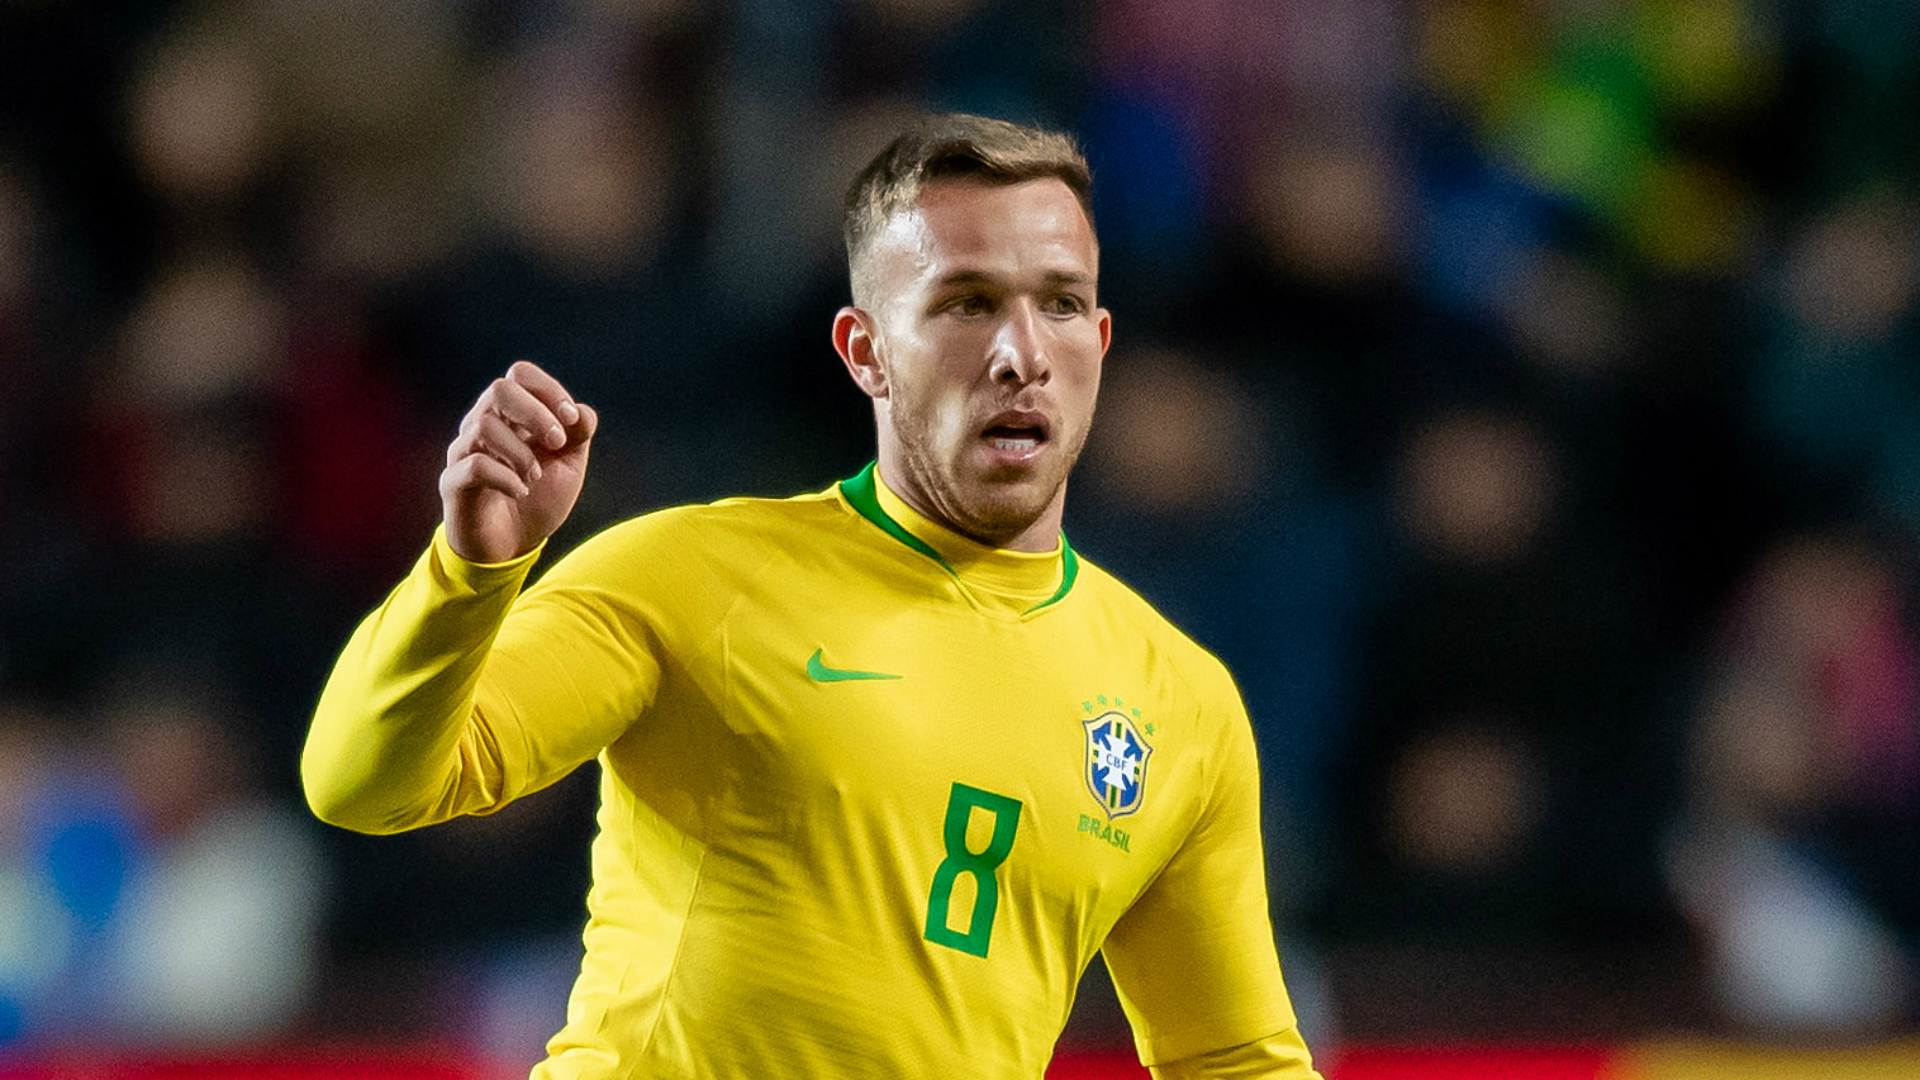 Brazil's Arthur injured in Copa America warm-up game